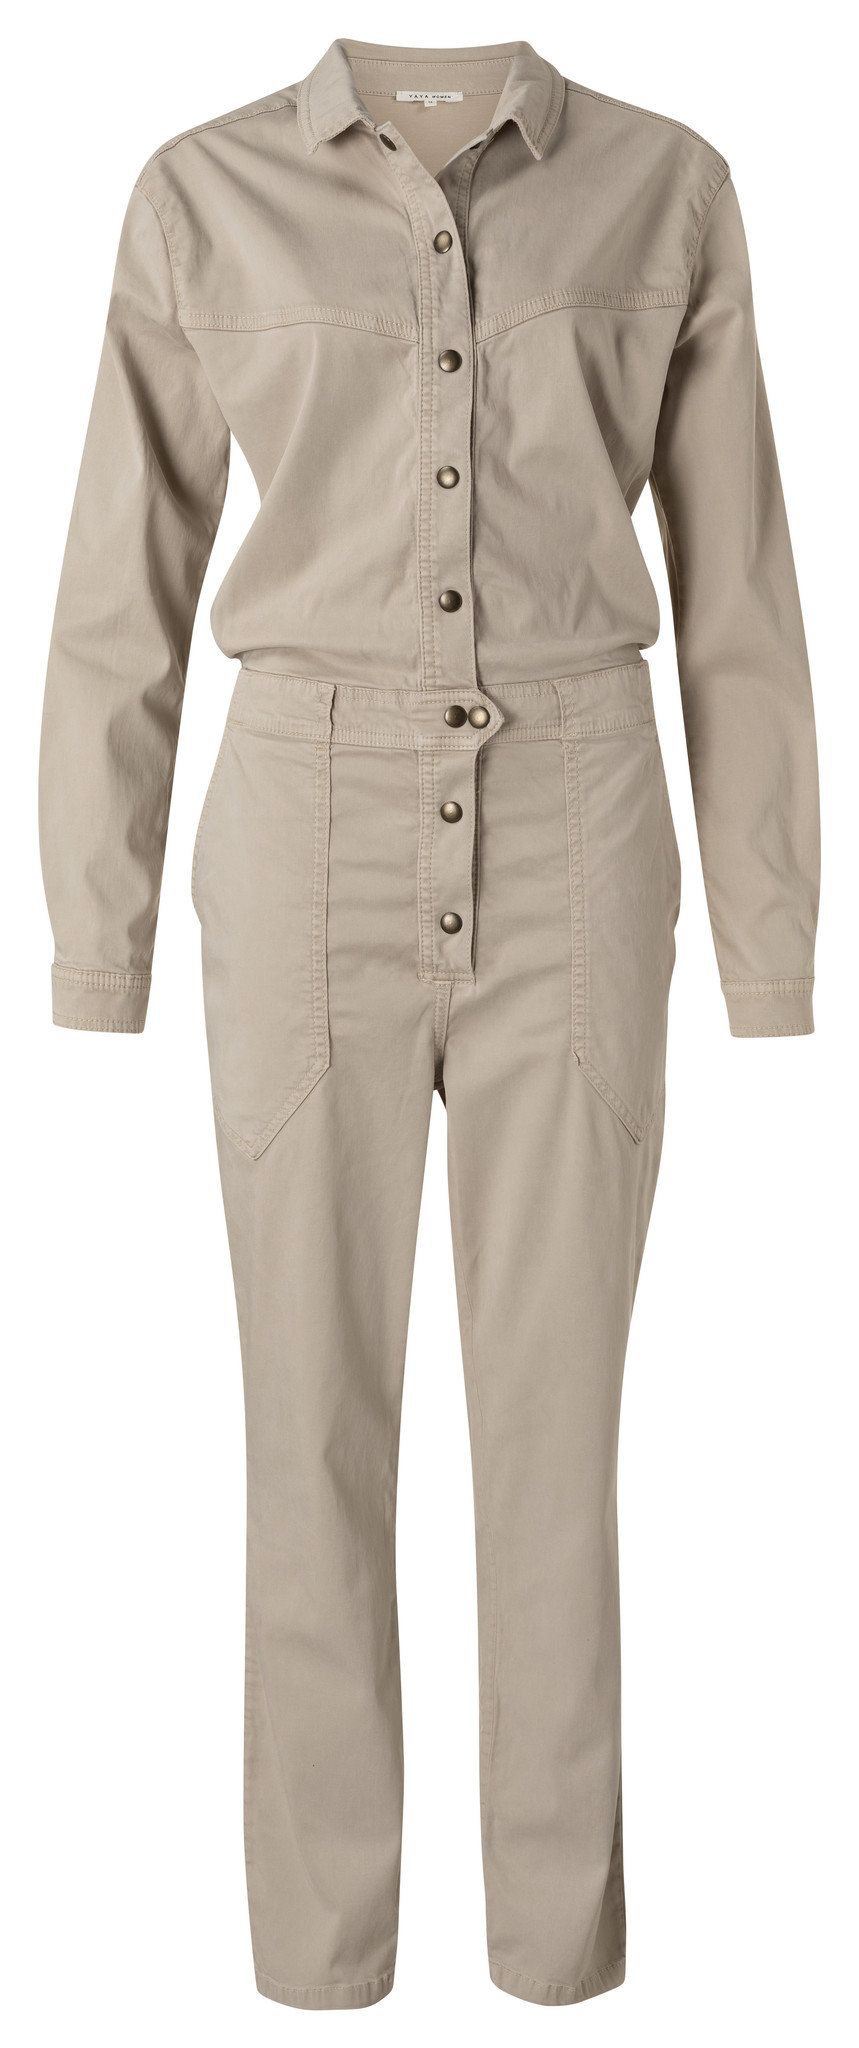 yaya Jumpsuit with worker 124128-113-1